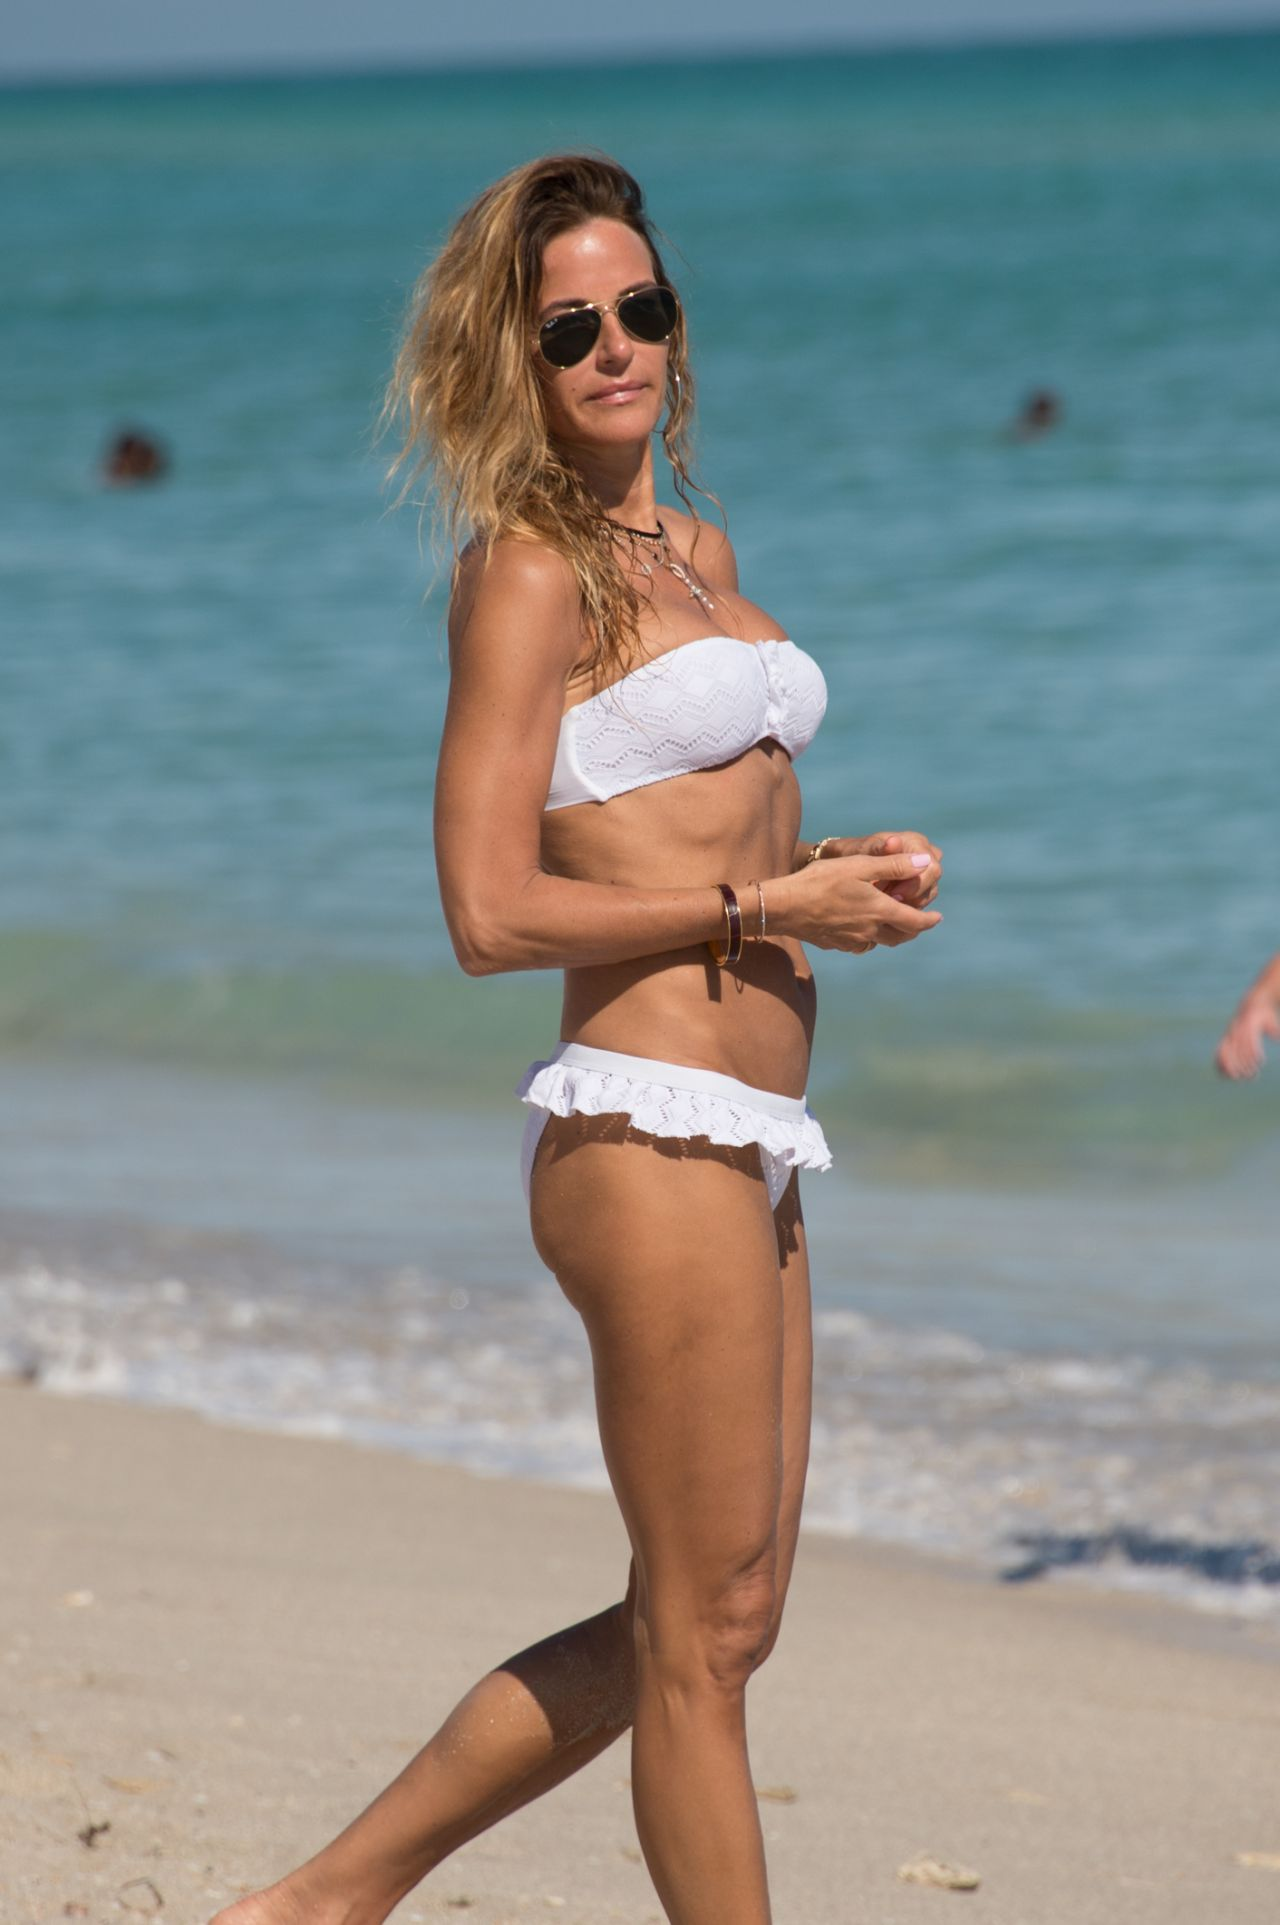 Kelly Bensimon in White Bikini in Miami Pic 22 of 35